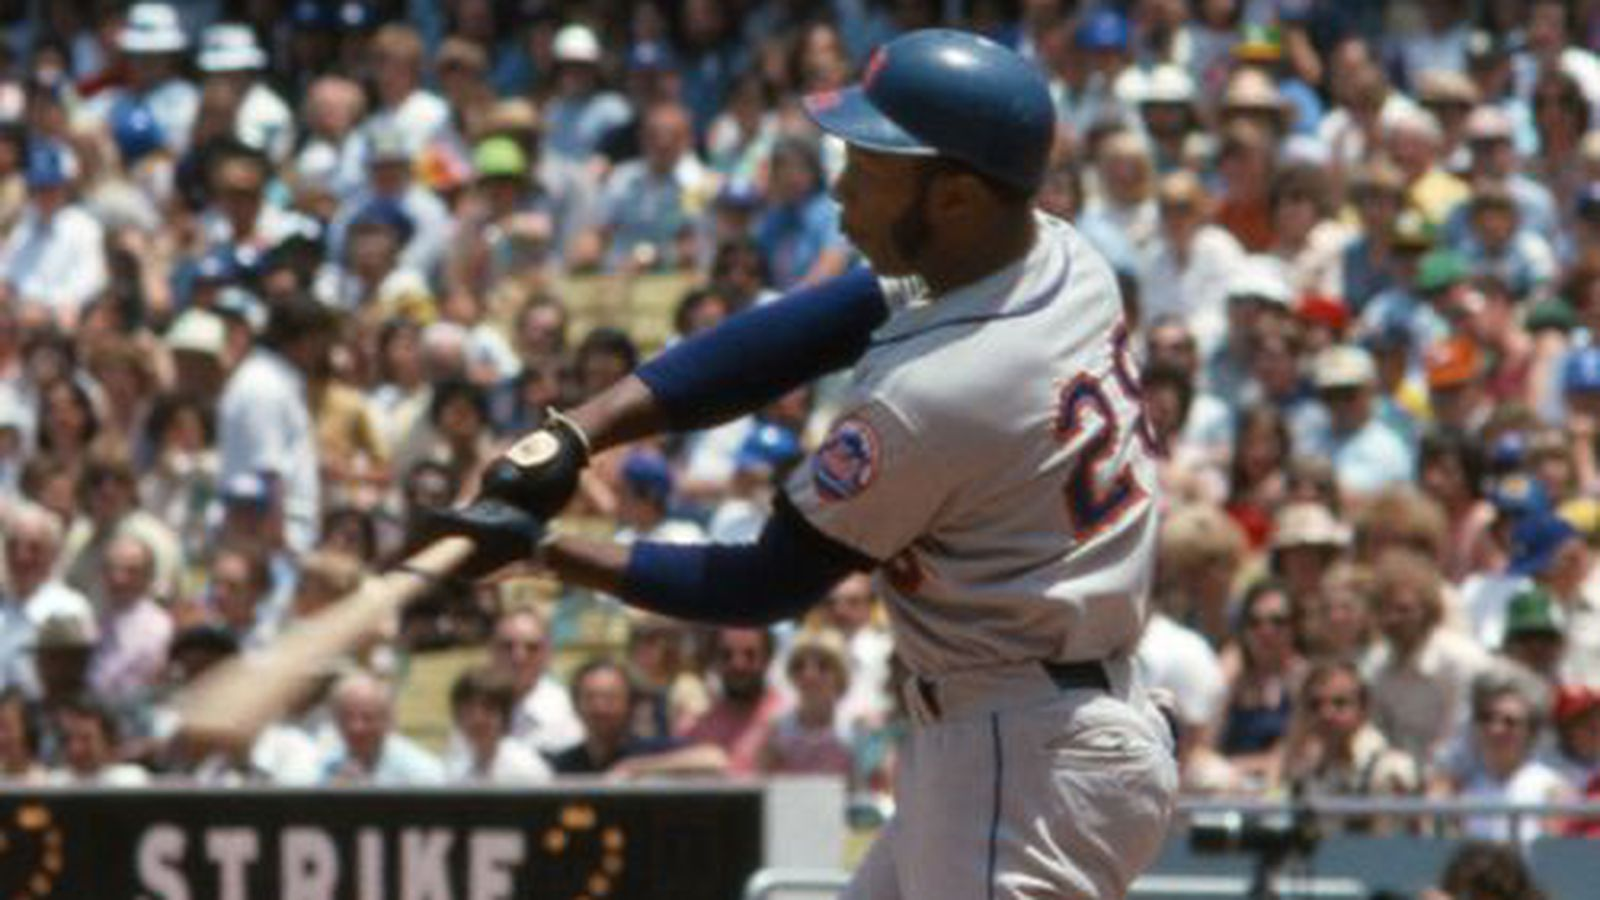 mets top 25 all time home run leaders 15 john milner